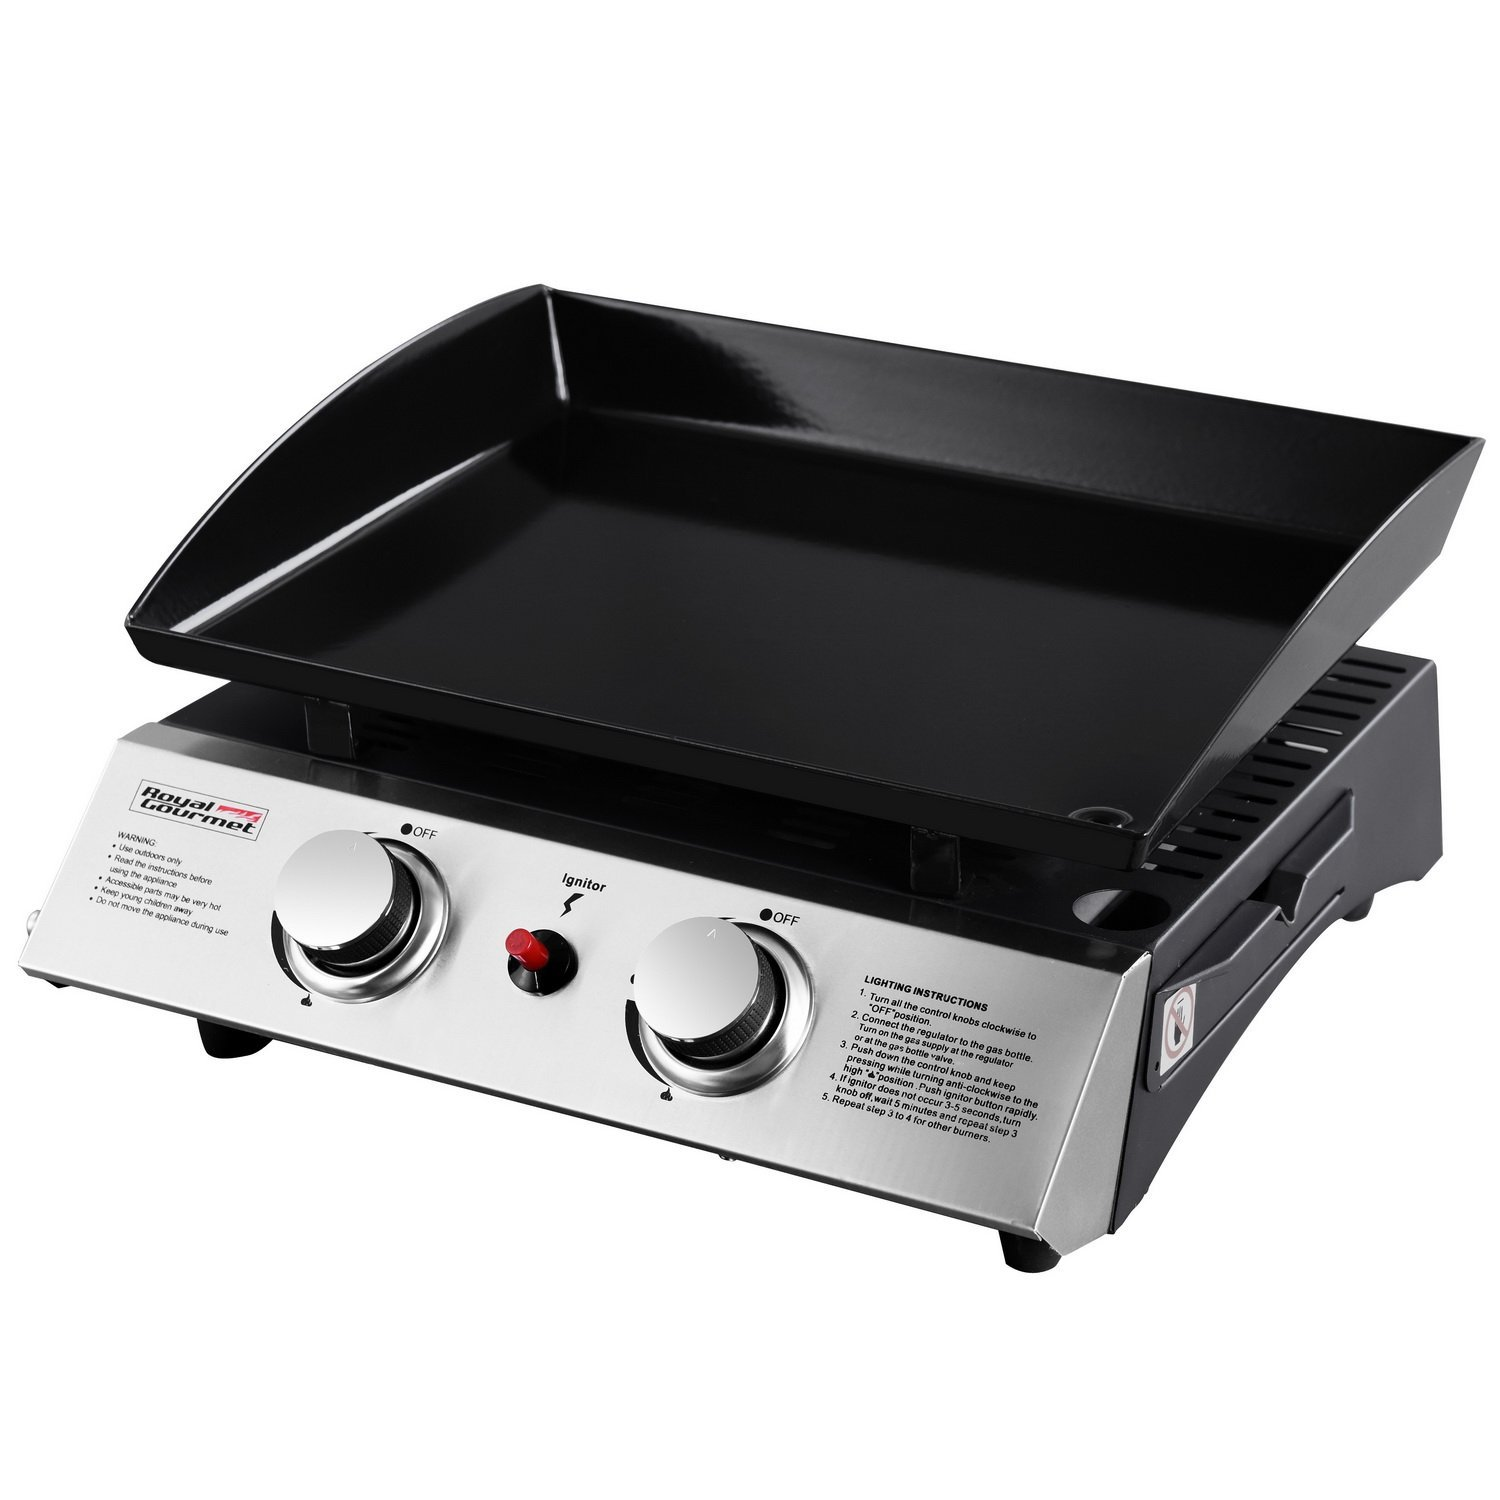 cheap griddle portable find griddle portable deals on line at rh guide alibaba com